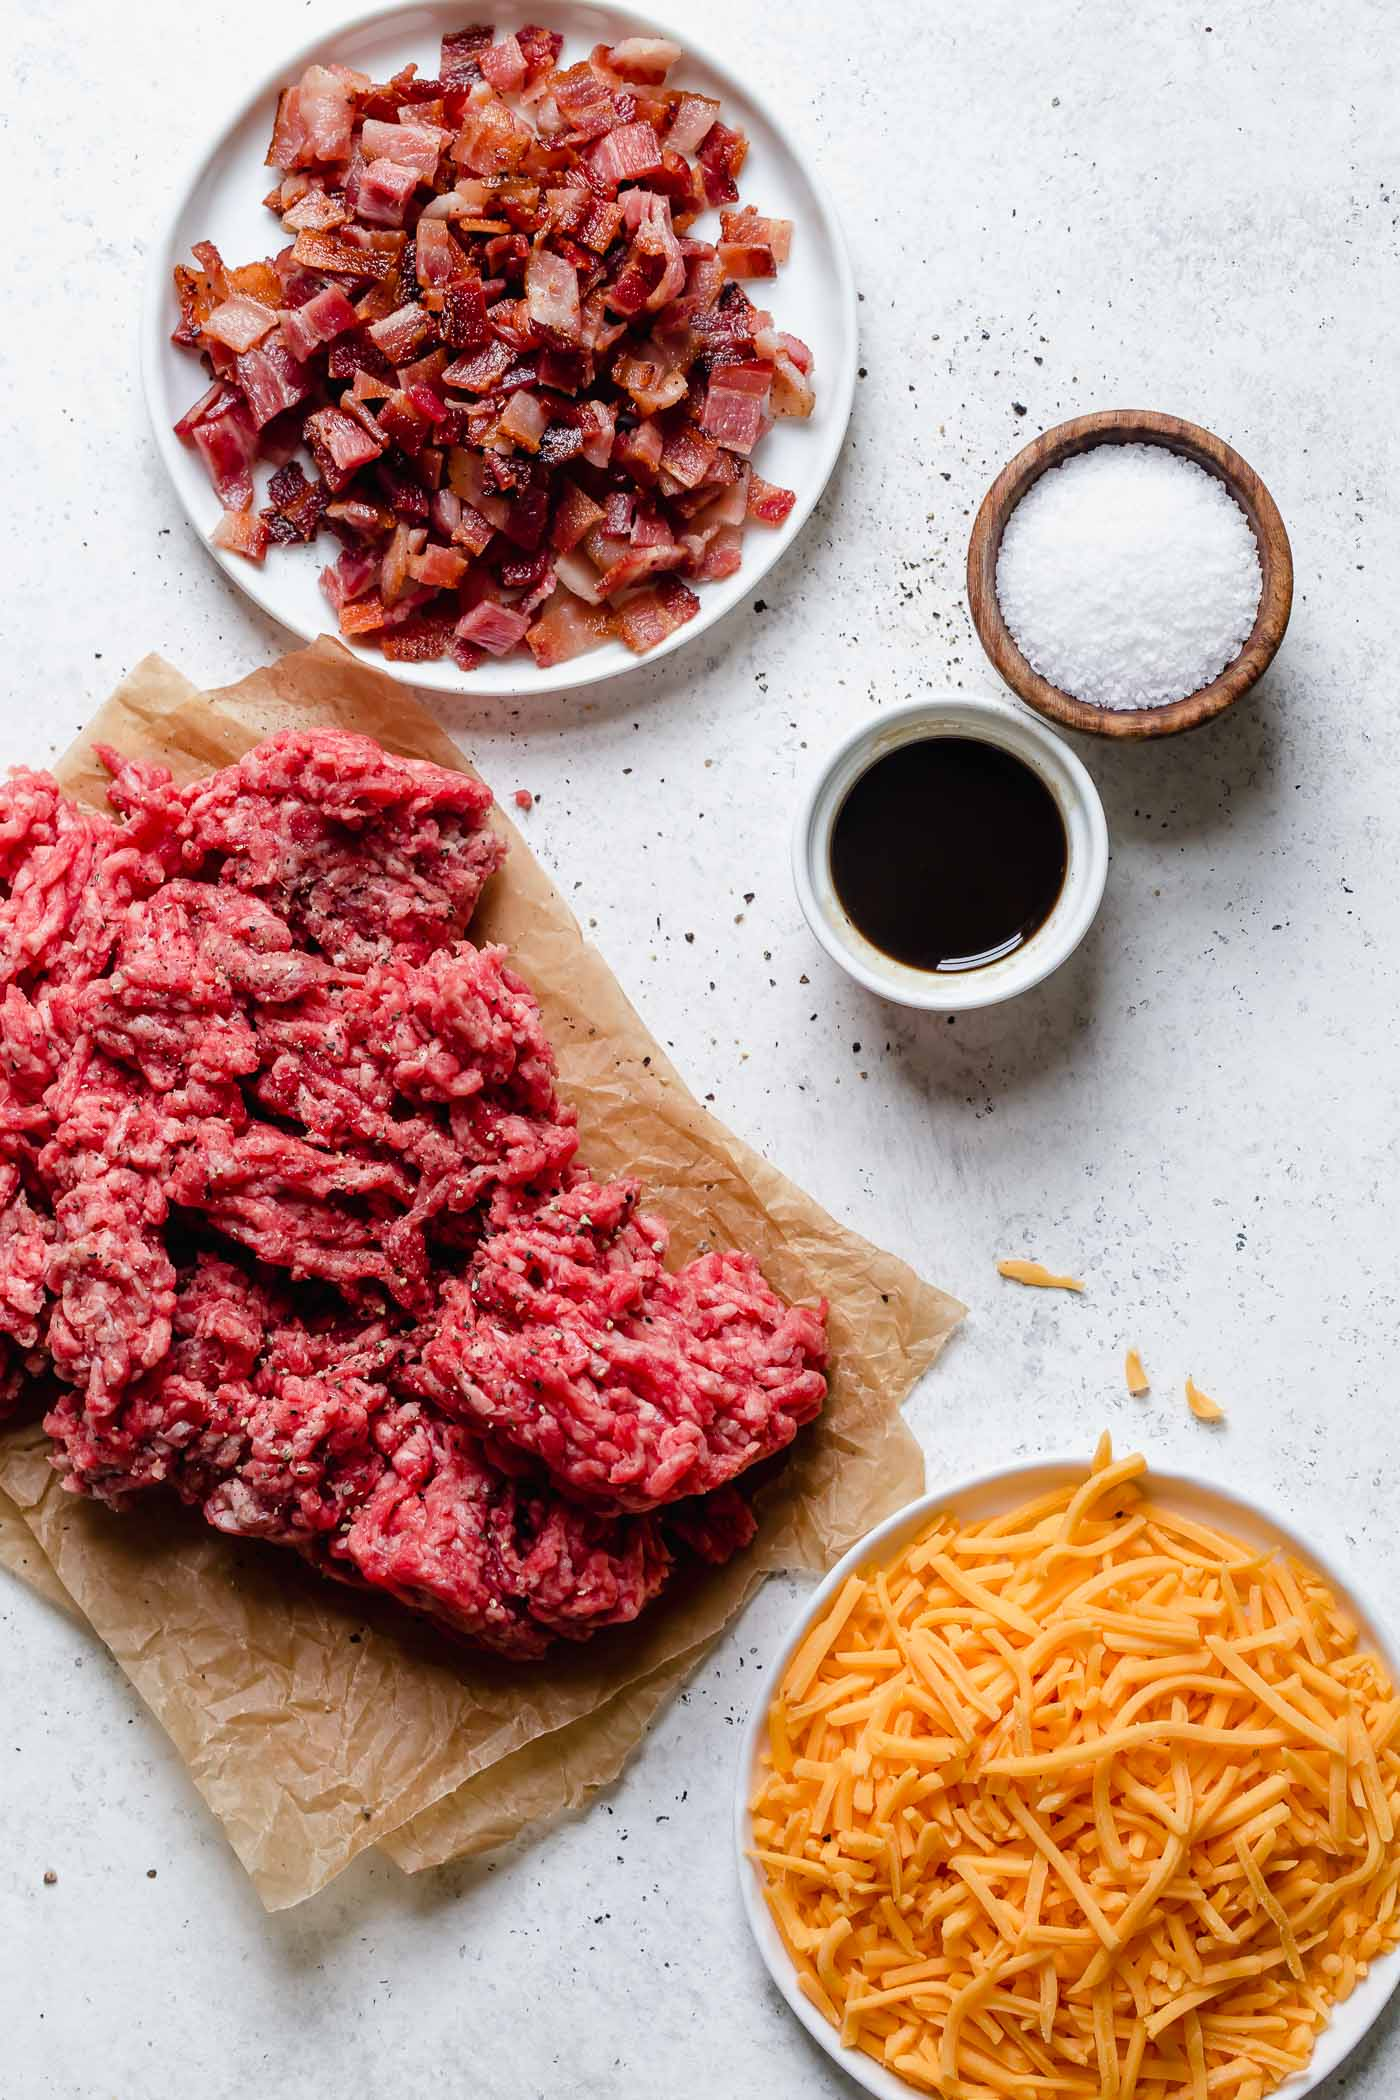 bacon cheddar stuffed burger ingredients (hamburger, bacon, cheddar cheese, worcestershire sauce, salt) arranged on a white backdrop.